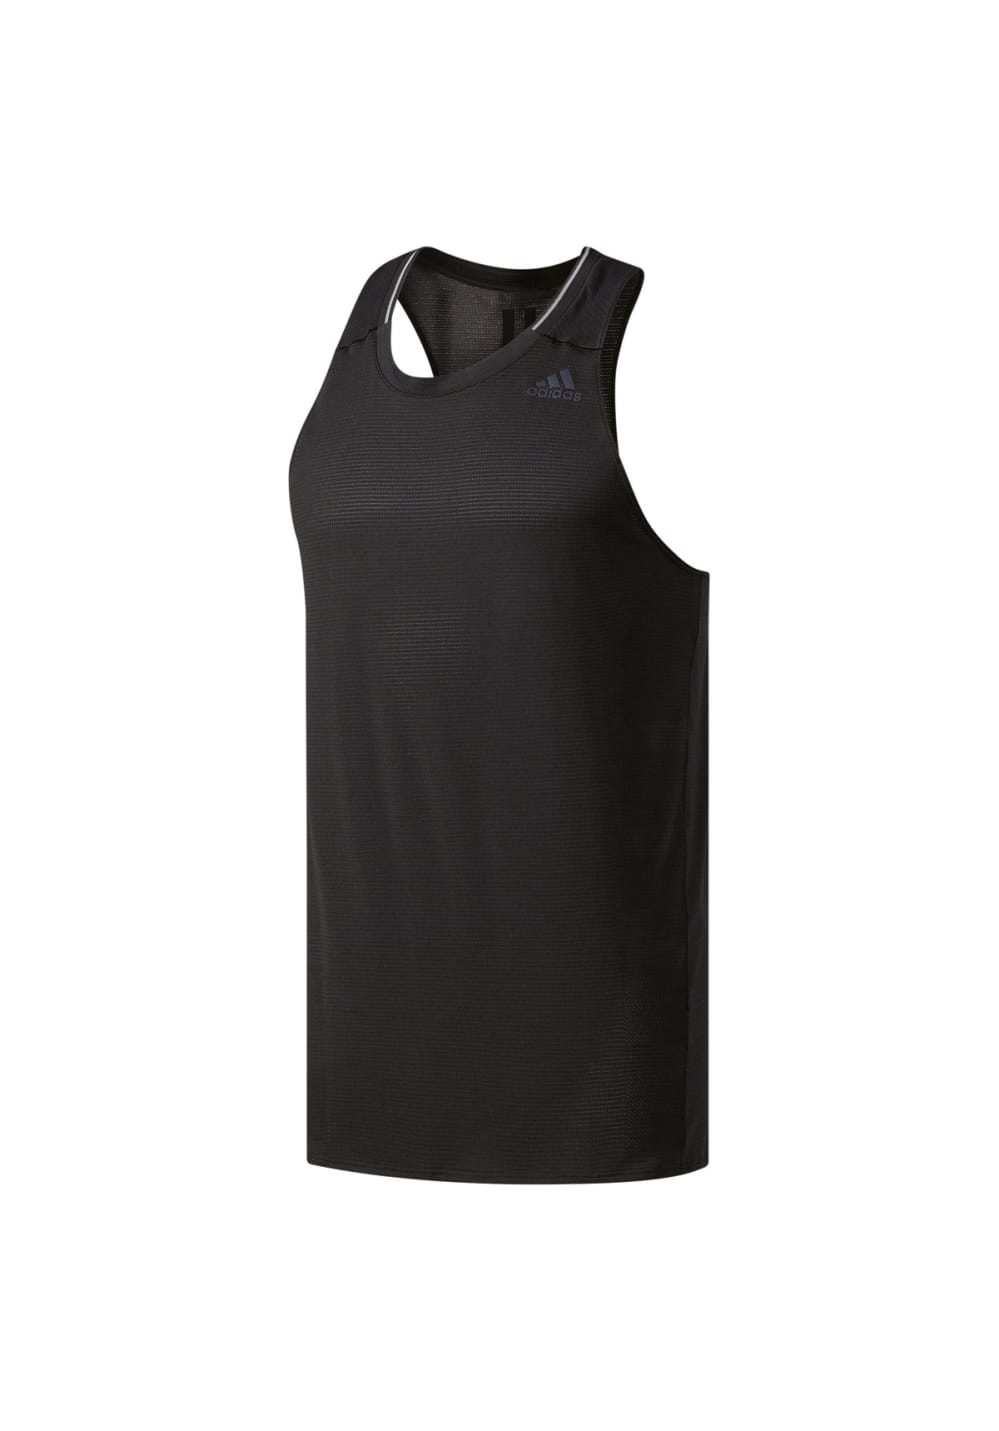 77e891f5c Next. -21%. This product is currently out of stock. adidas. Supernova  Singlet - Running tops for Men